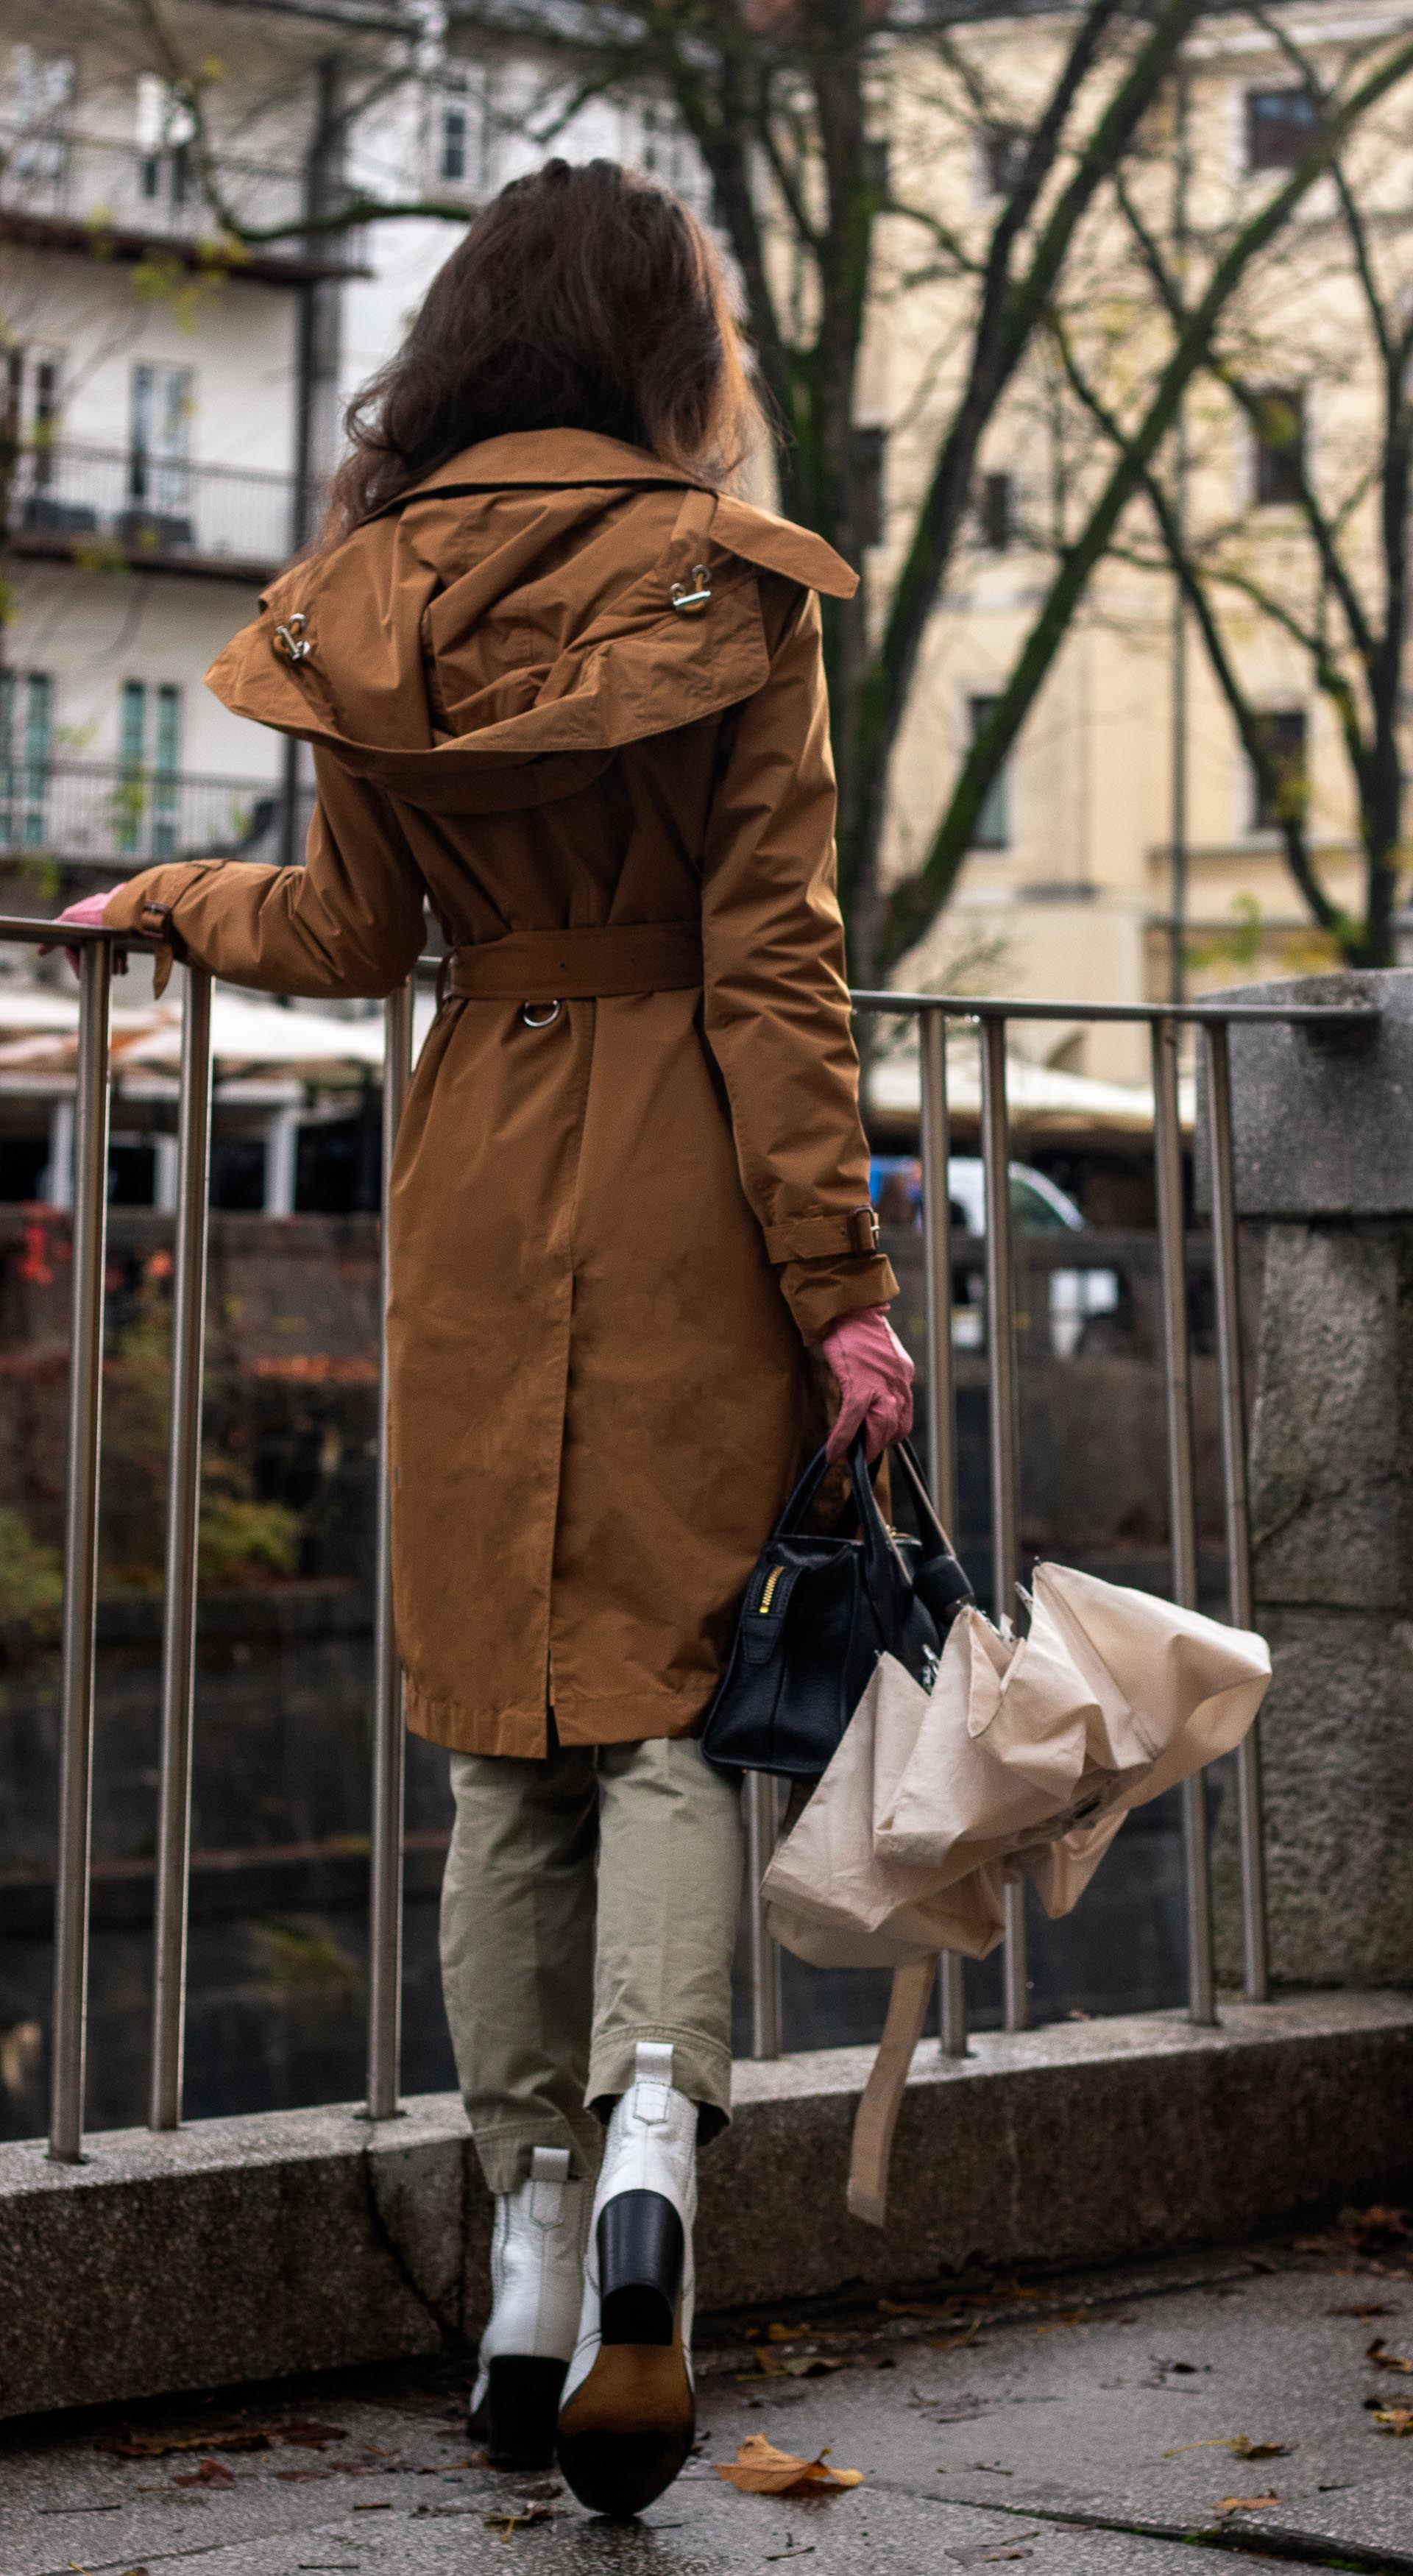 Fashion blogger Veronika Lipar of Brunette from Wall Street wearing white Ganni cowboy boots camel Burberry trench coat Re/Done cargo pants pink gloves umbrella in the rain